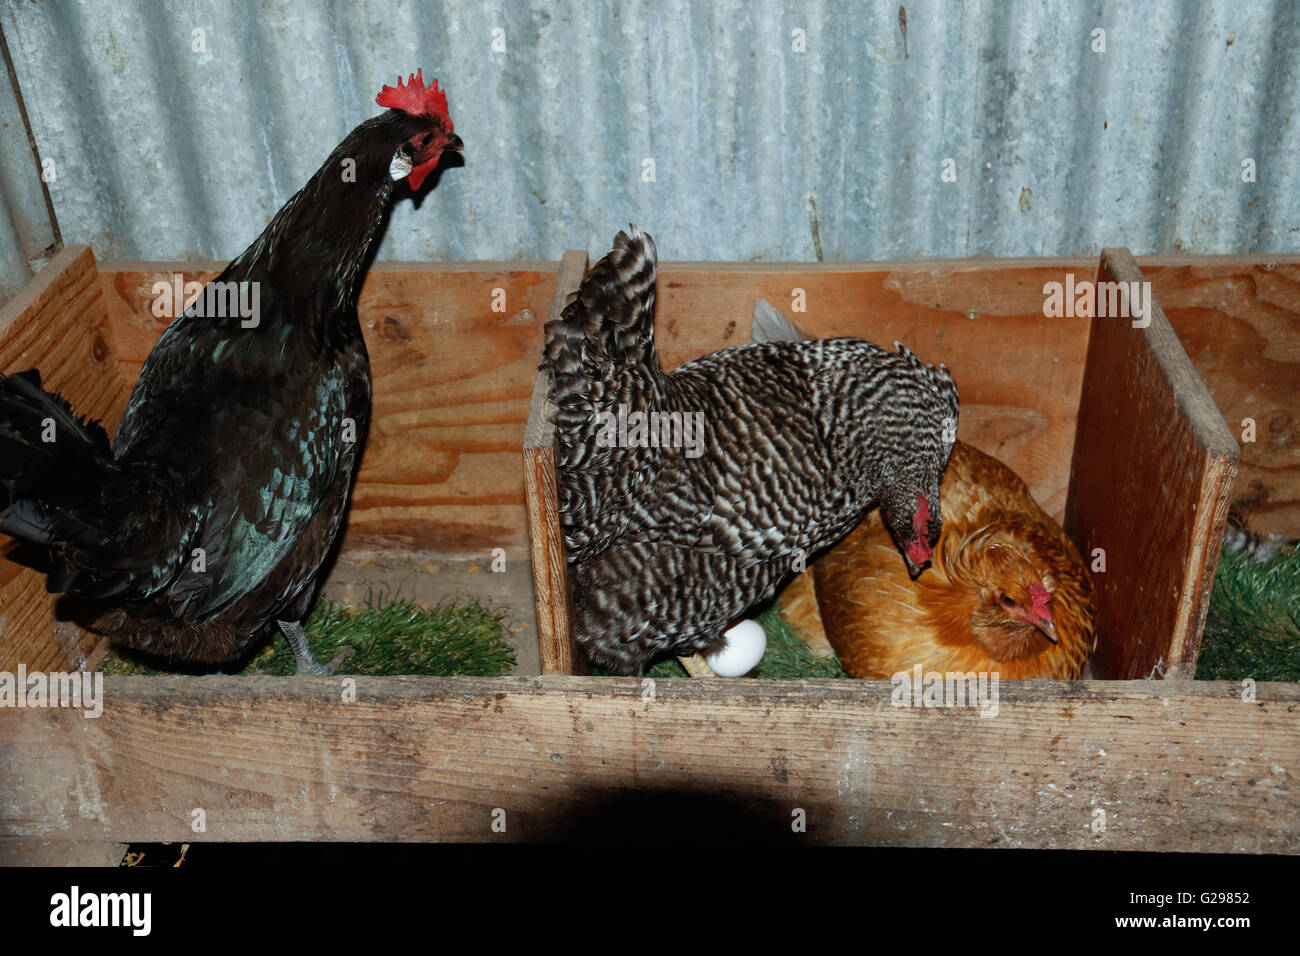 Hens laying eggs together in a hen house - Stock Image